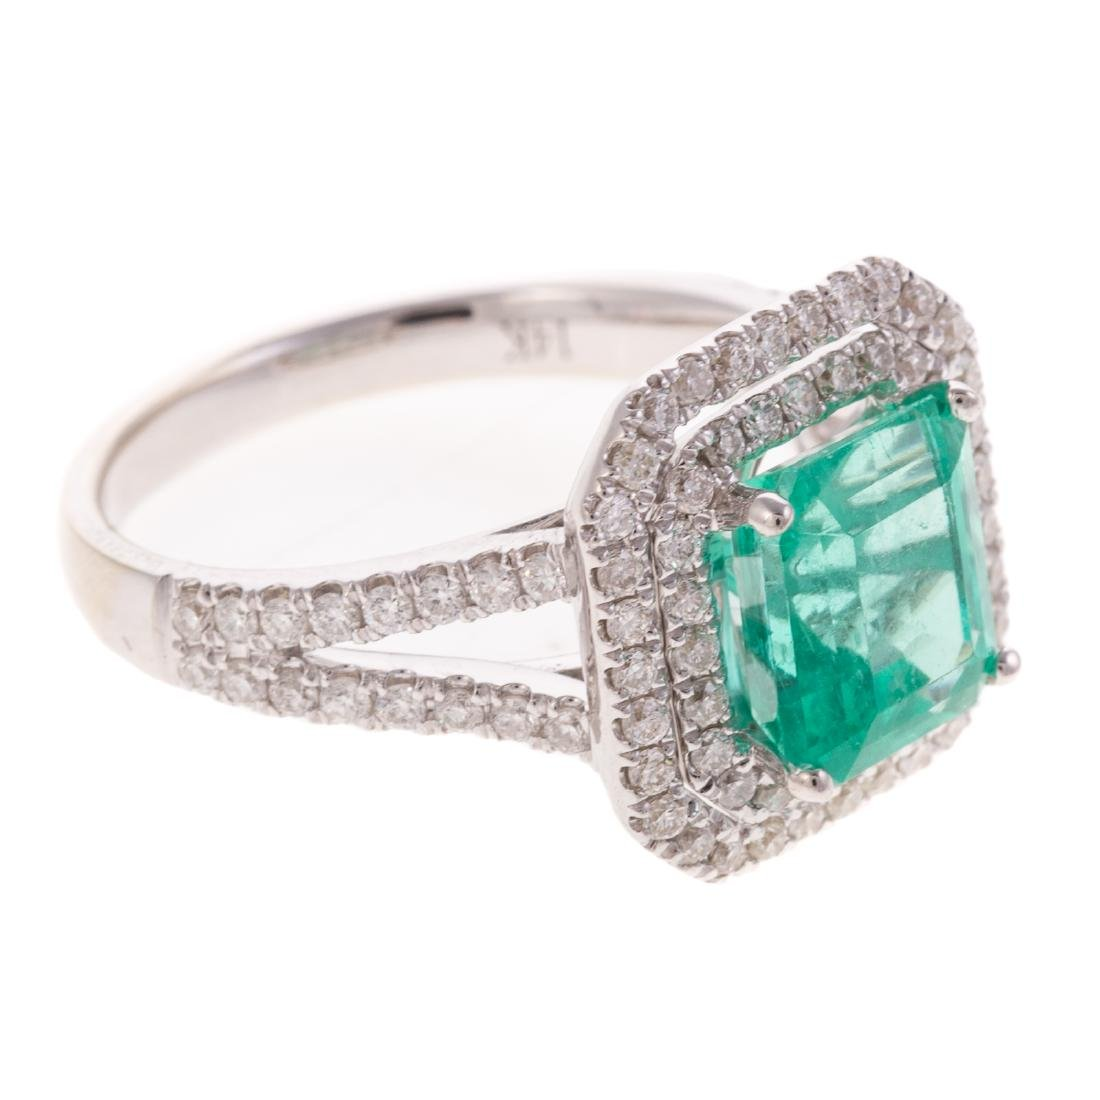 A 2.60ct Emerald & Diamond Ring in Gold - 2